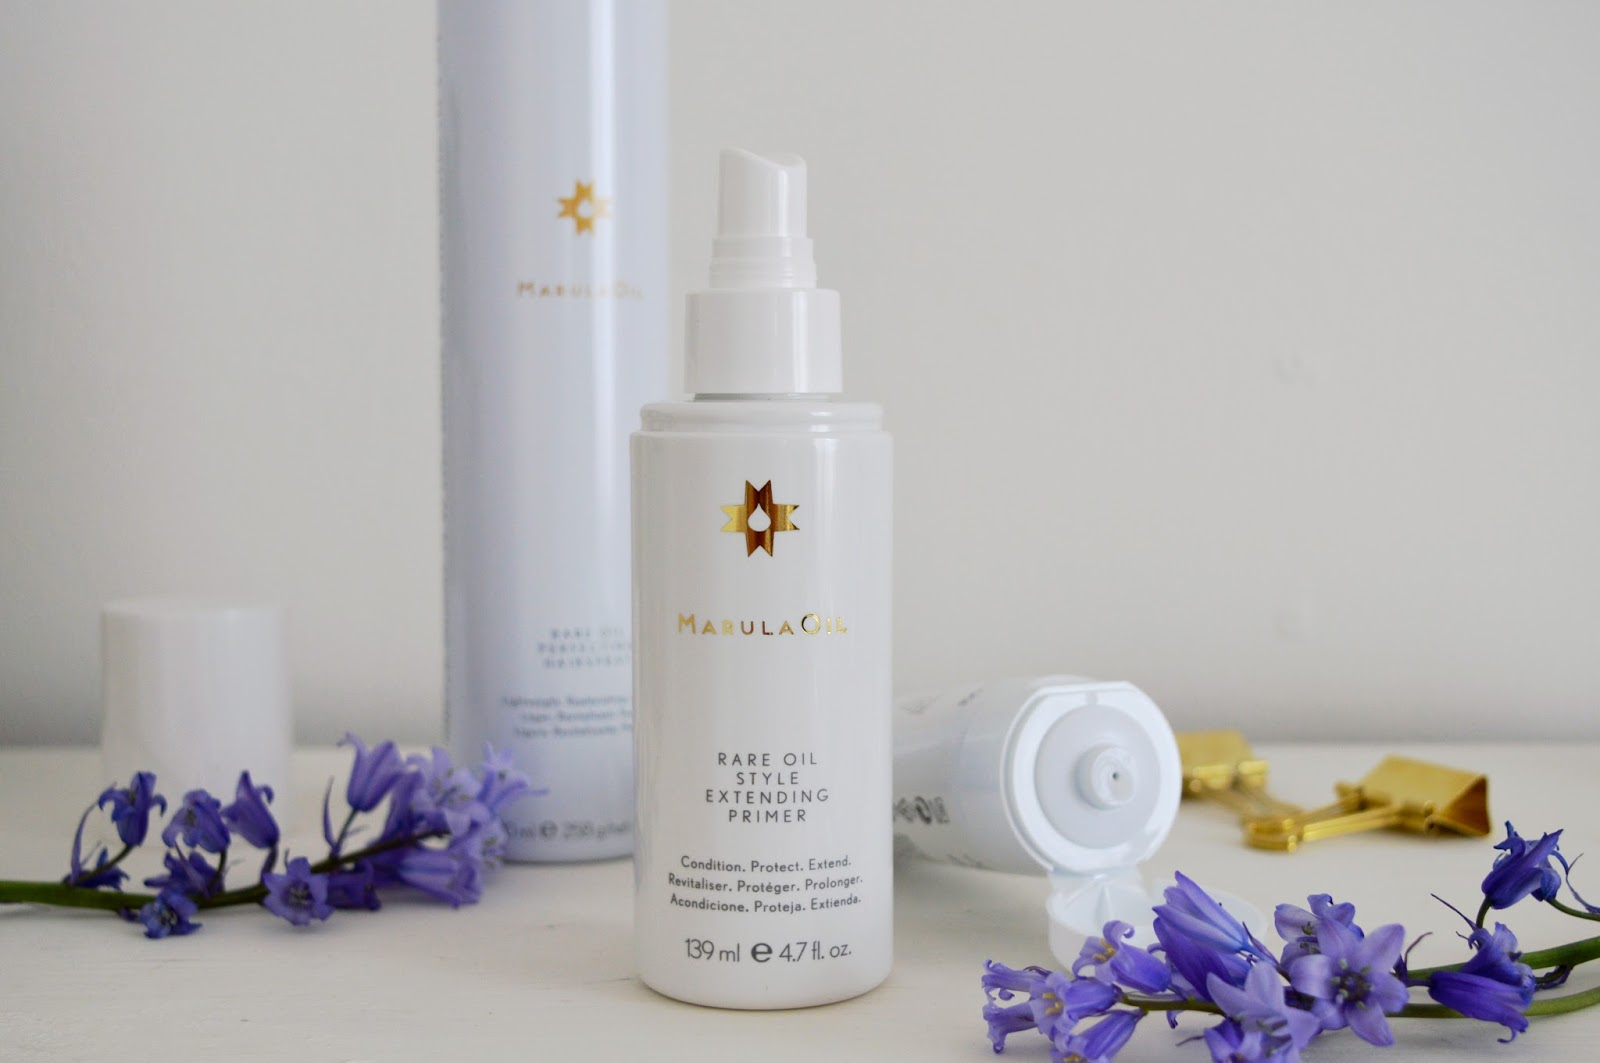 Marula oil haircare, marula oil hair care review, Paul Mitchell Marula Oil, beauty bloggers, UK beauty blog, lifestyle bloggers